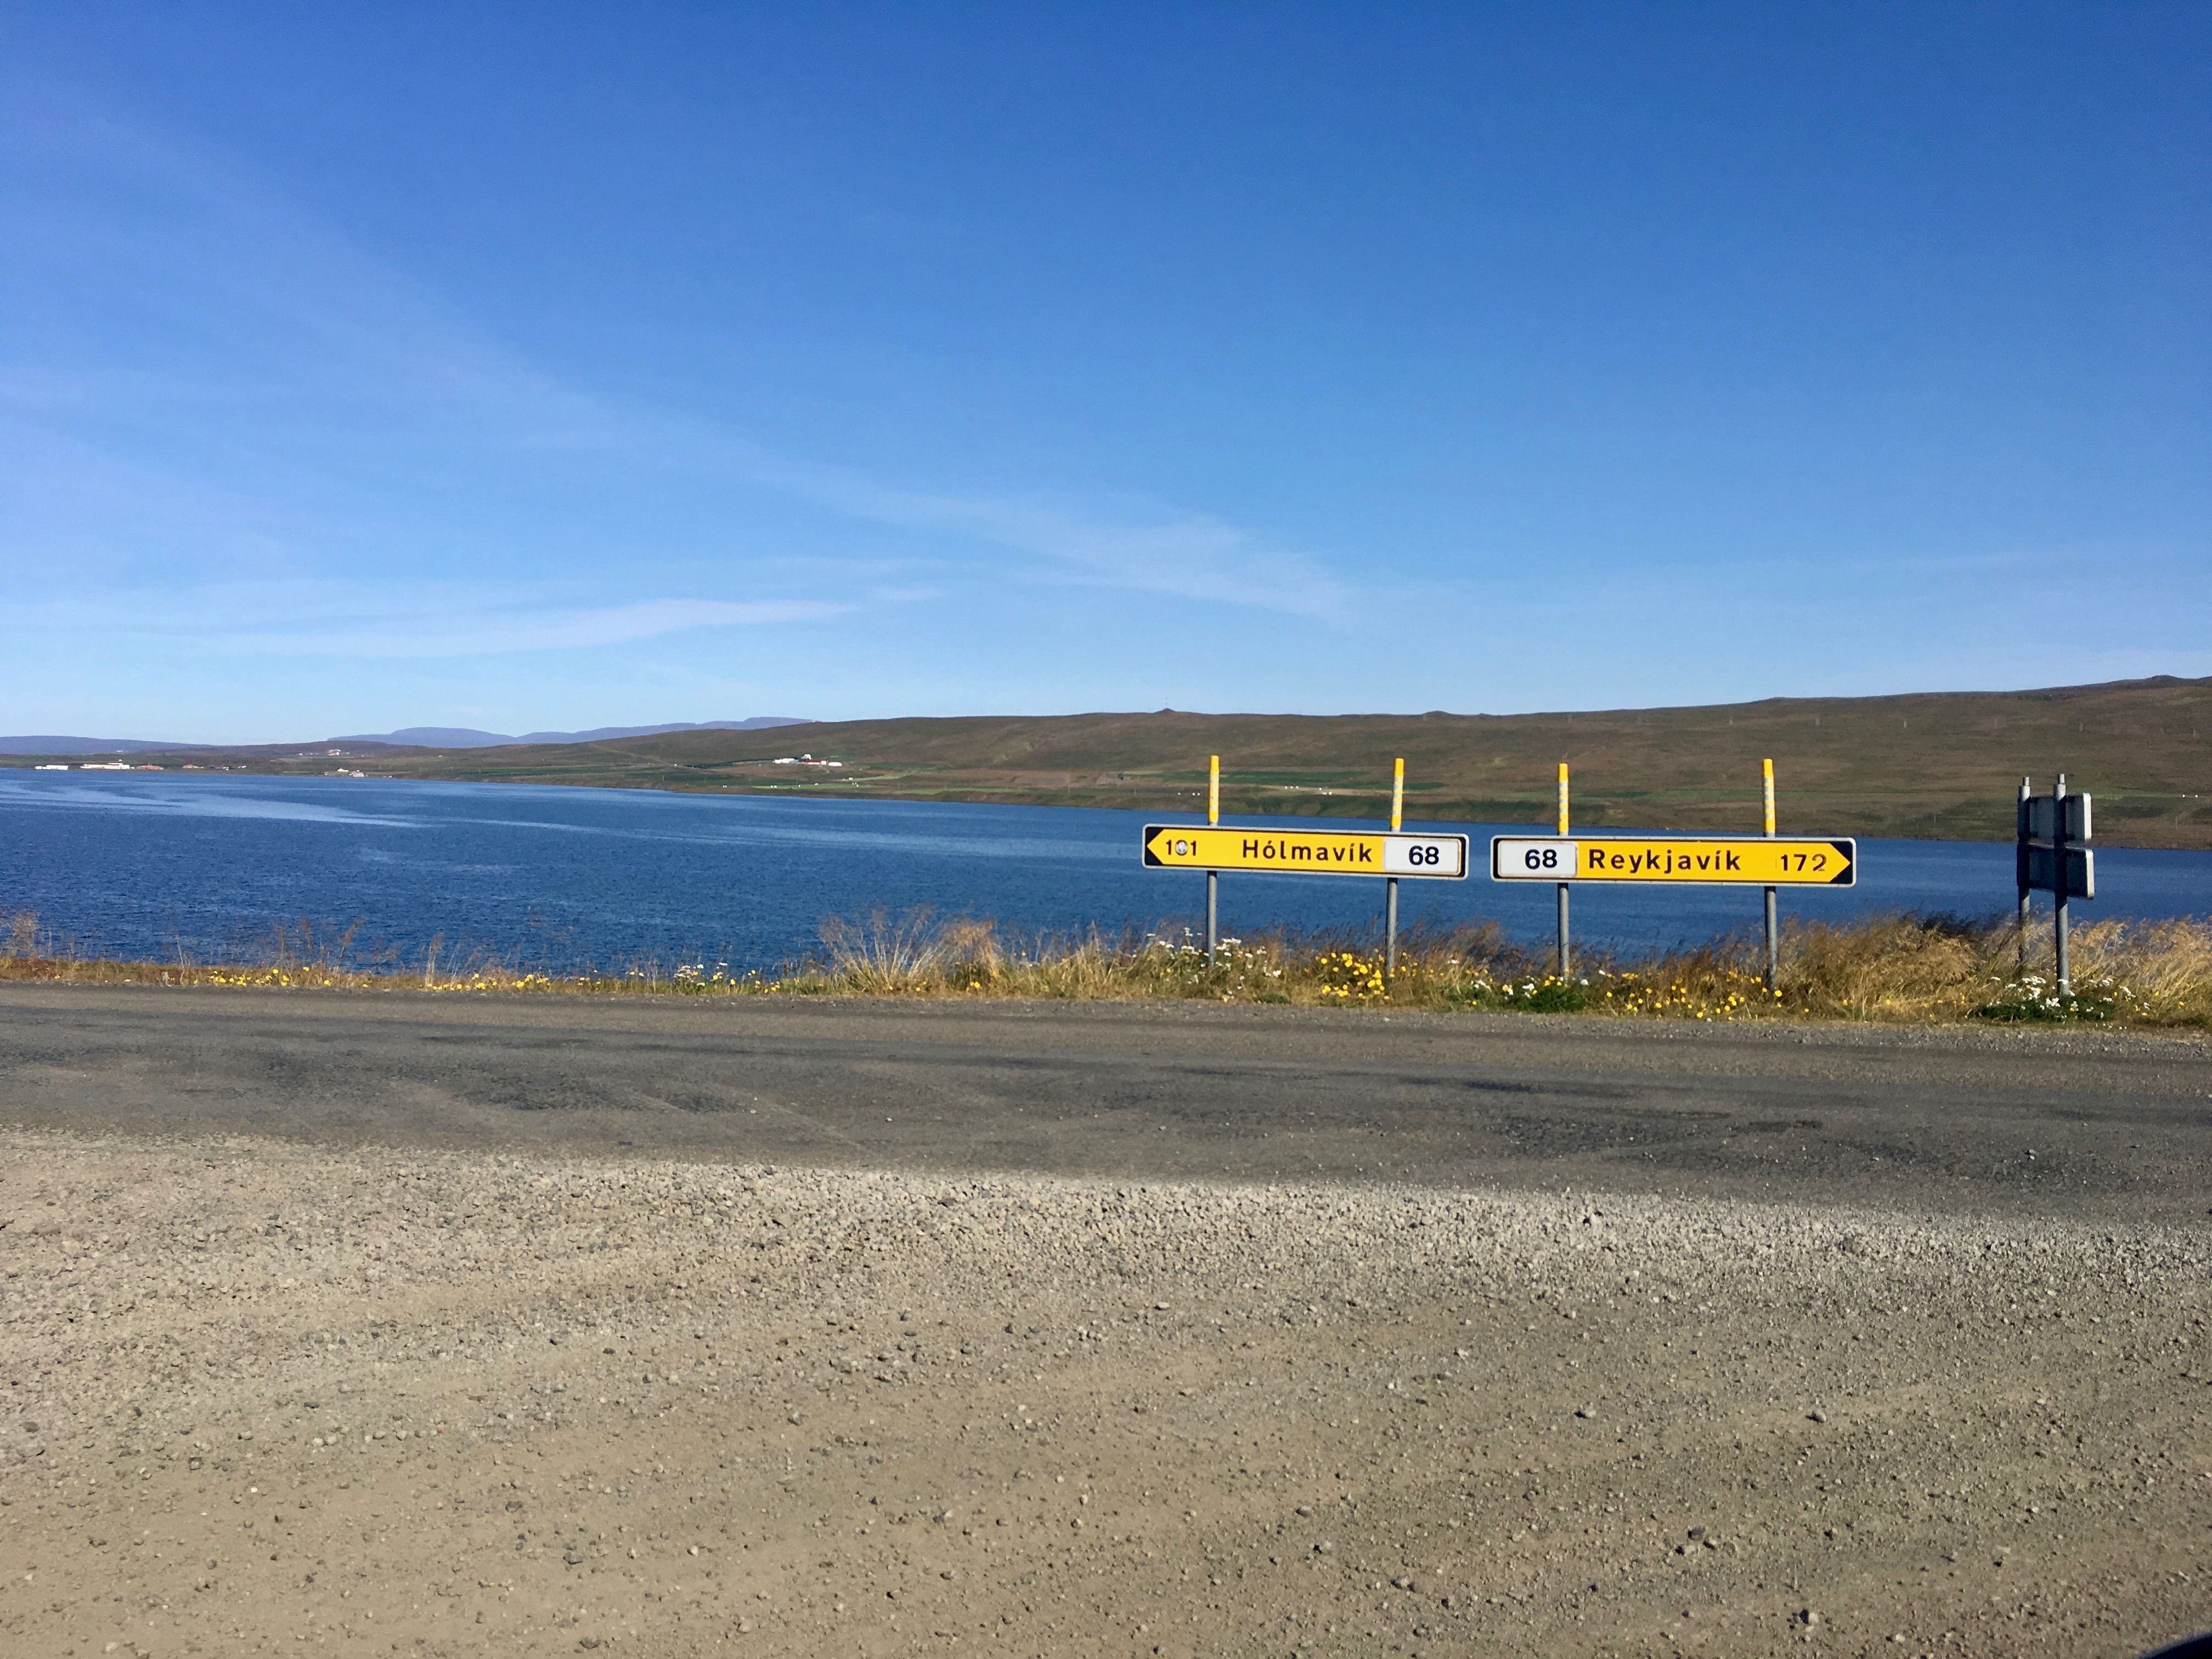 Iceland road signs